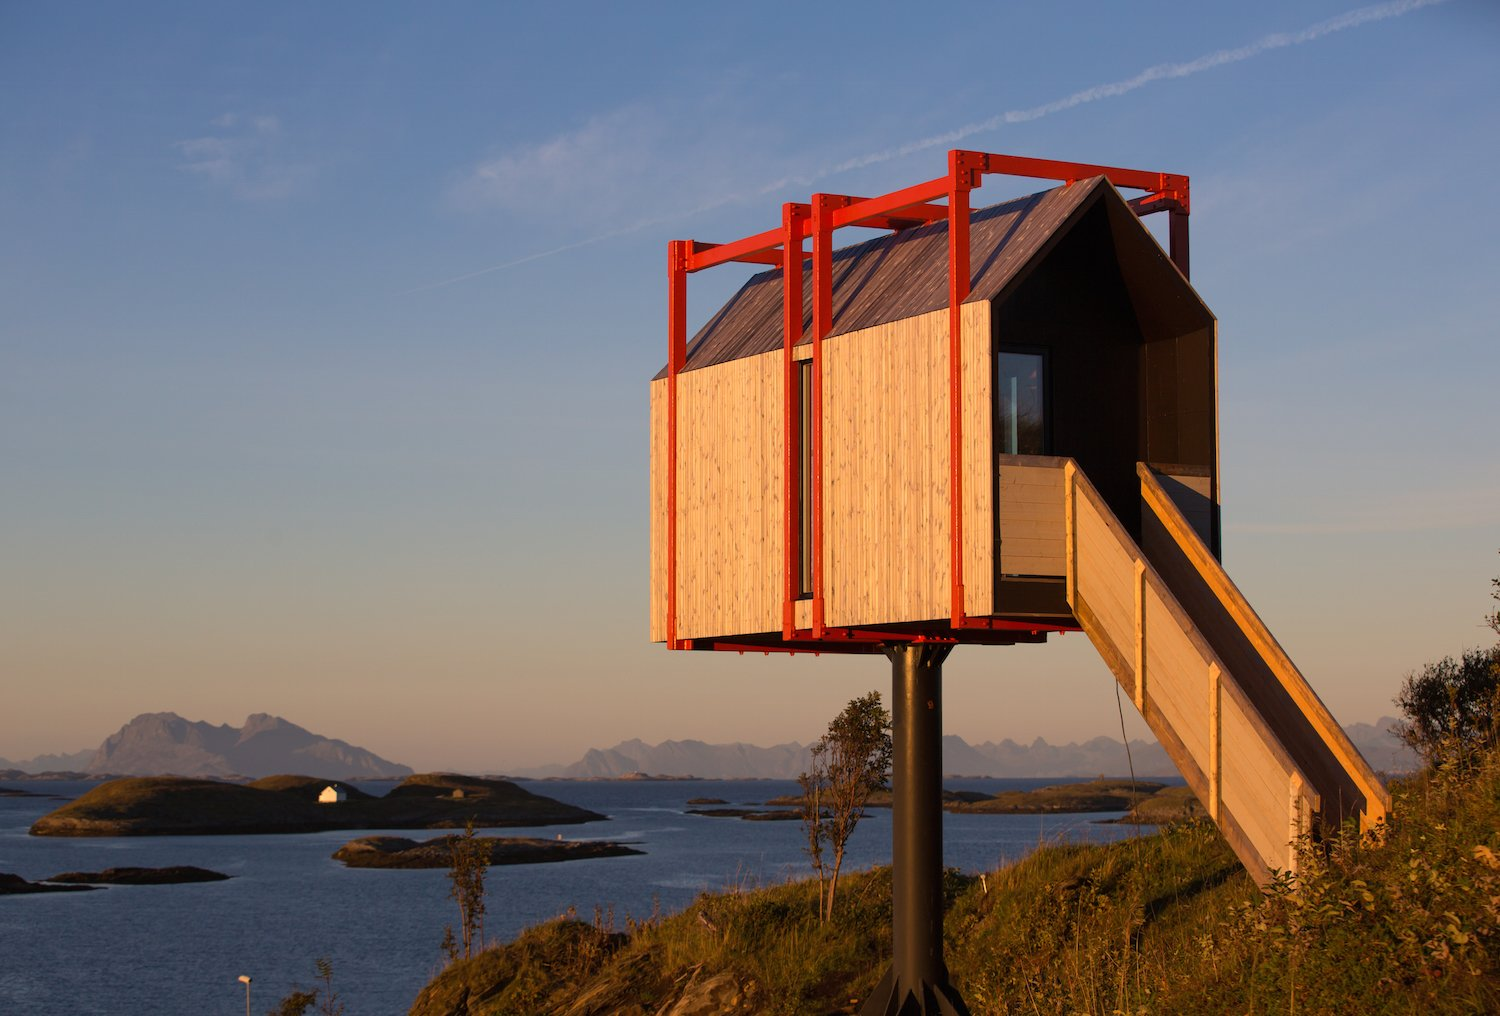 Exterior, Wood, Metal, Cabin, and Gable  Best Exterior Wood Gable Metal Cabin Photos from Grab Your Friends and Escape to a Remote Cabin Cluster on a Norwegian Island